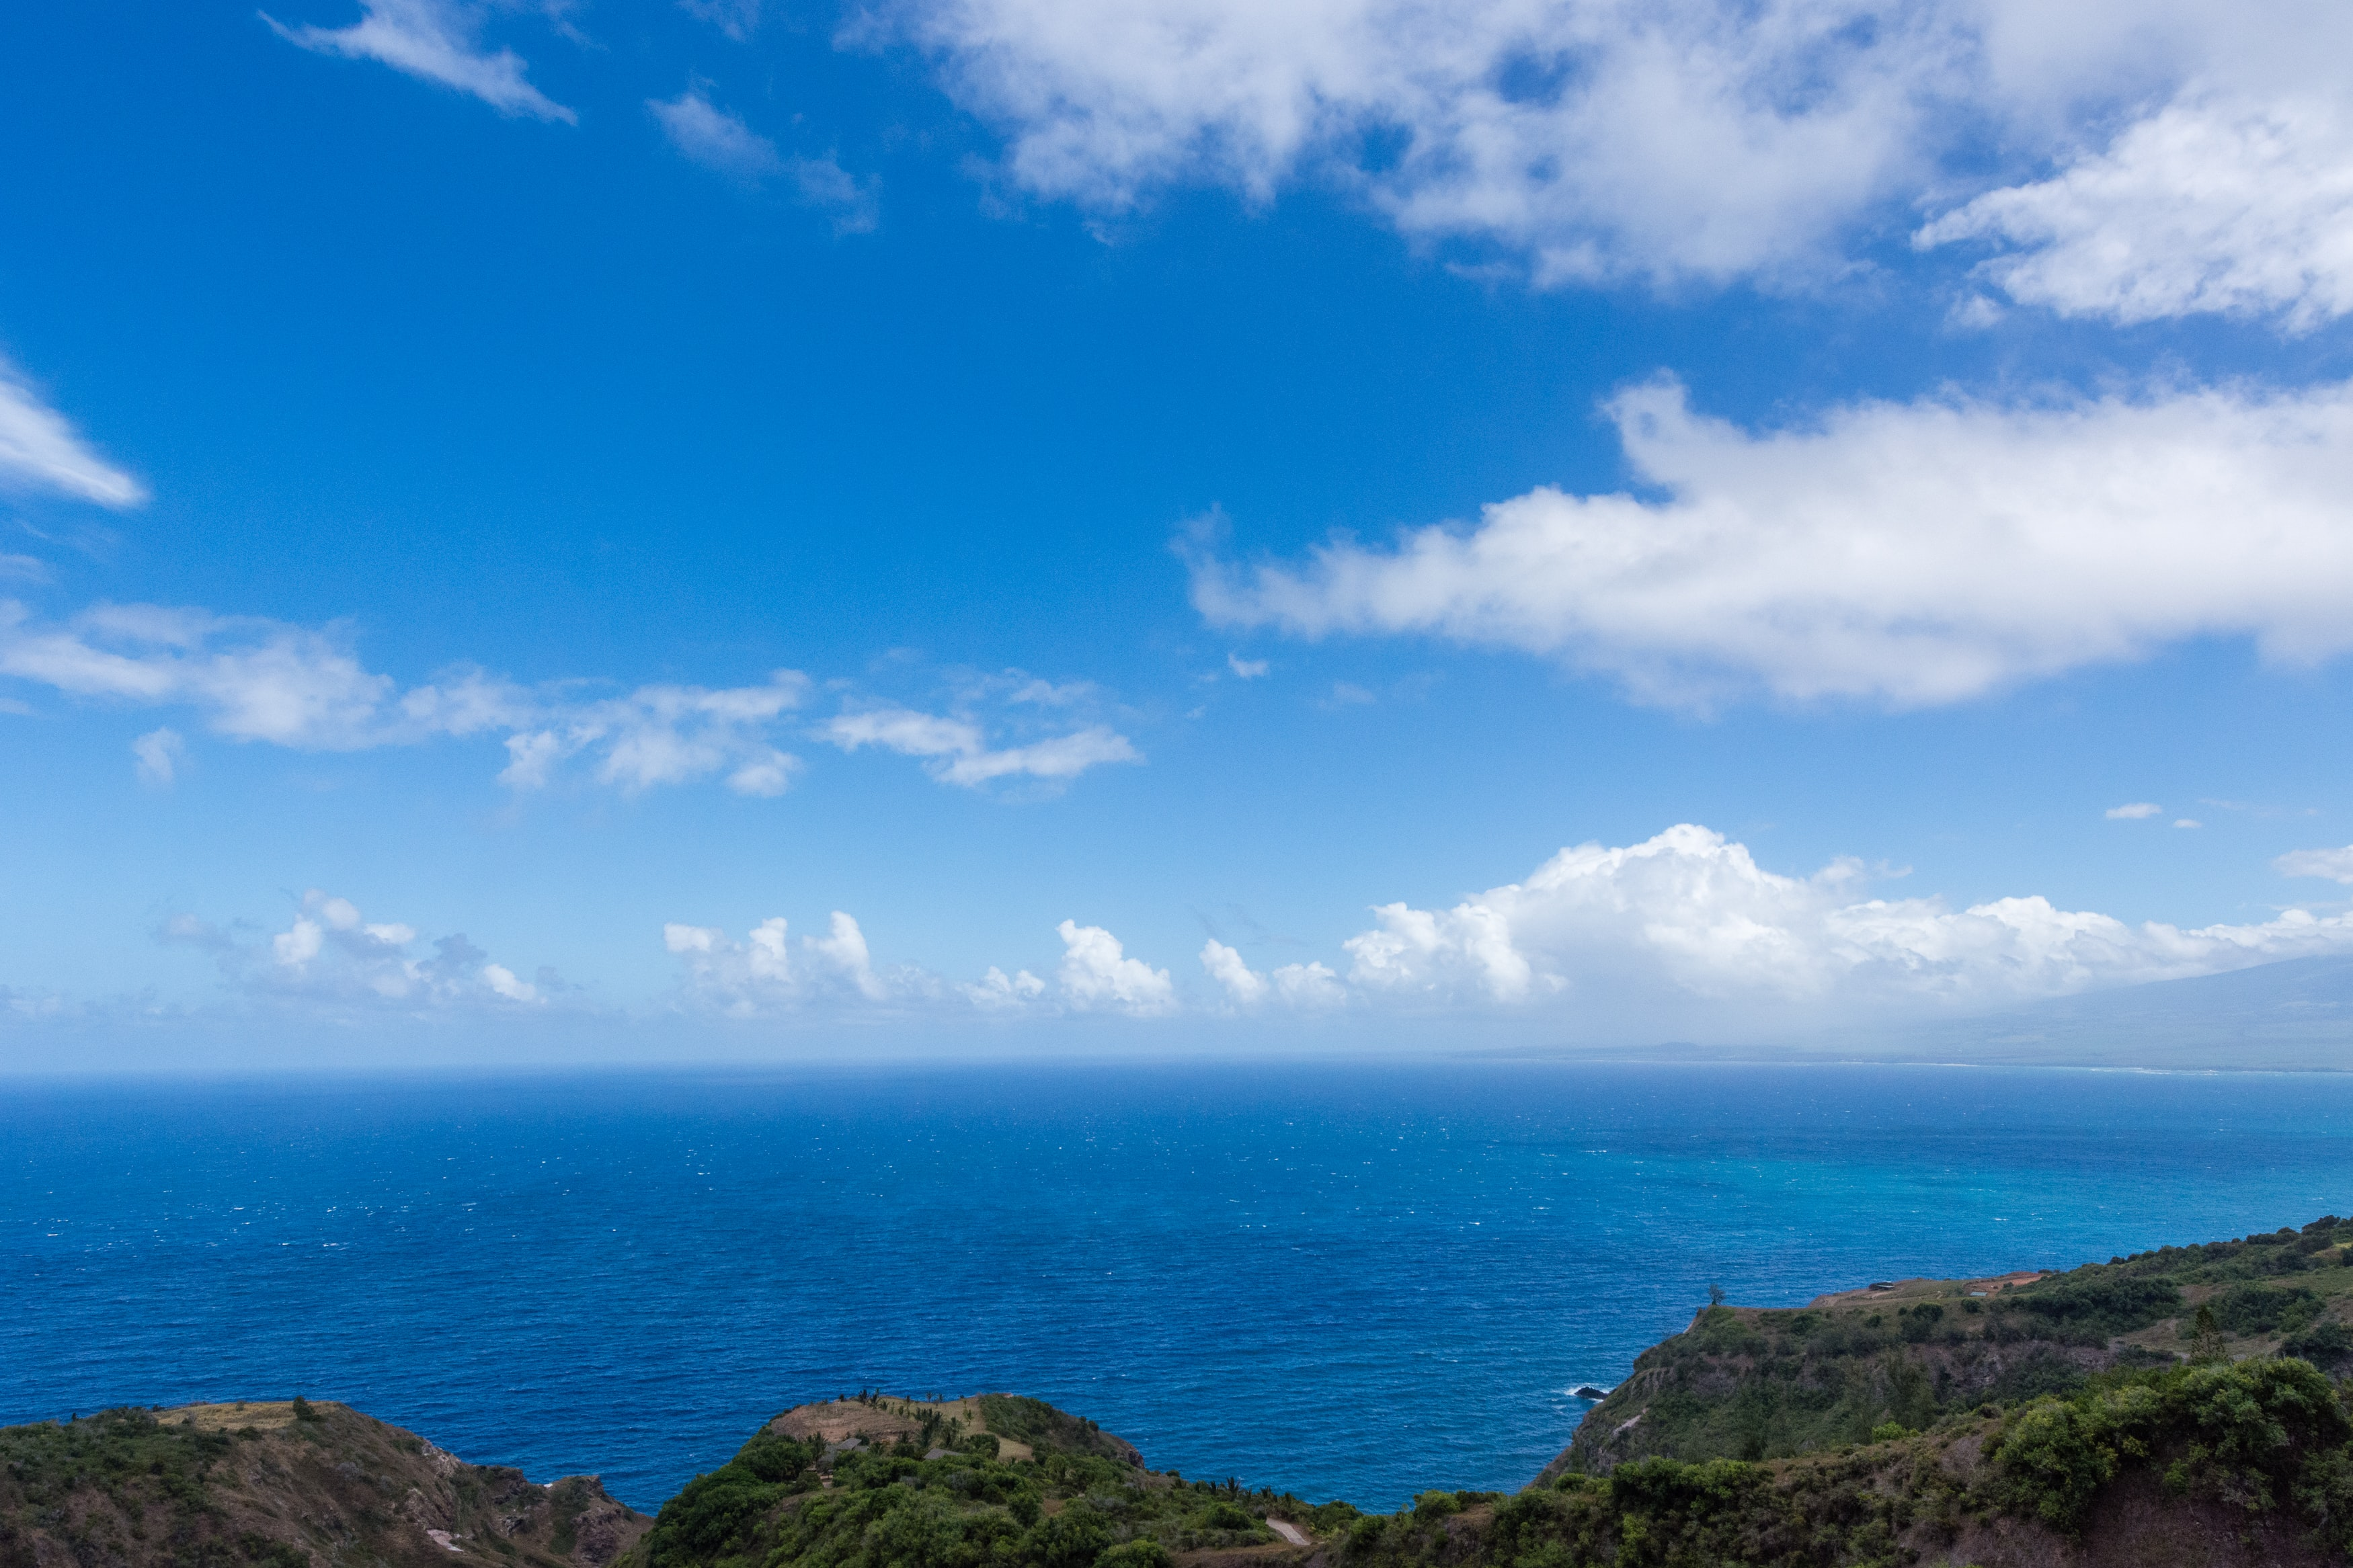 blue clouds above ocean near mountain panoramic photography